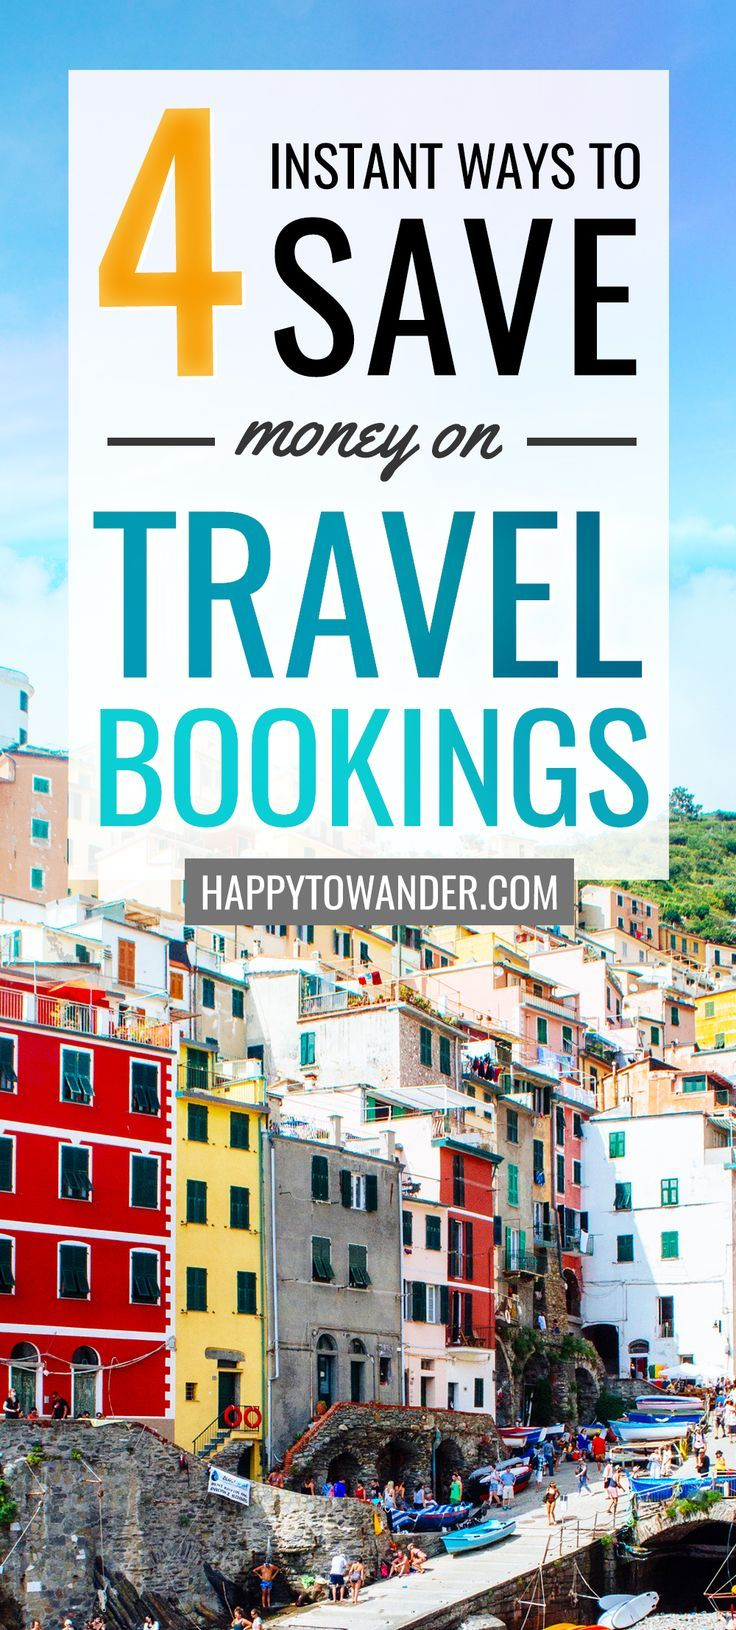 4 Genius Ways To Instantly Save On Travel Bookings Save Money Travel Travel Money Travel Advice